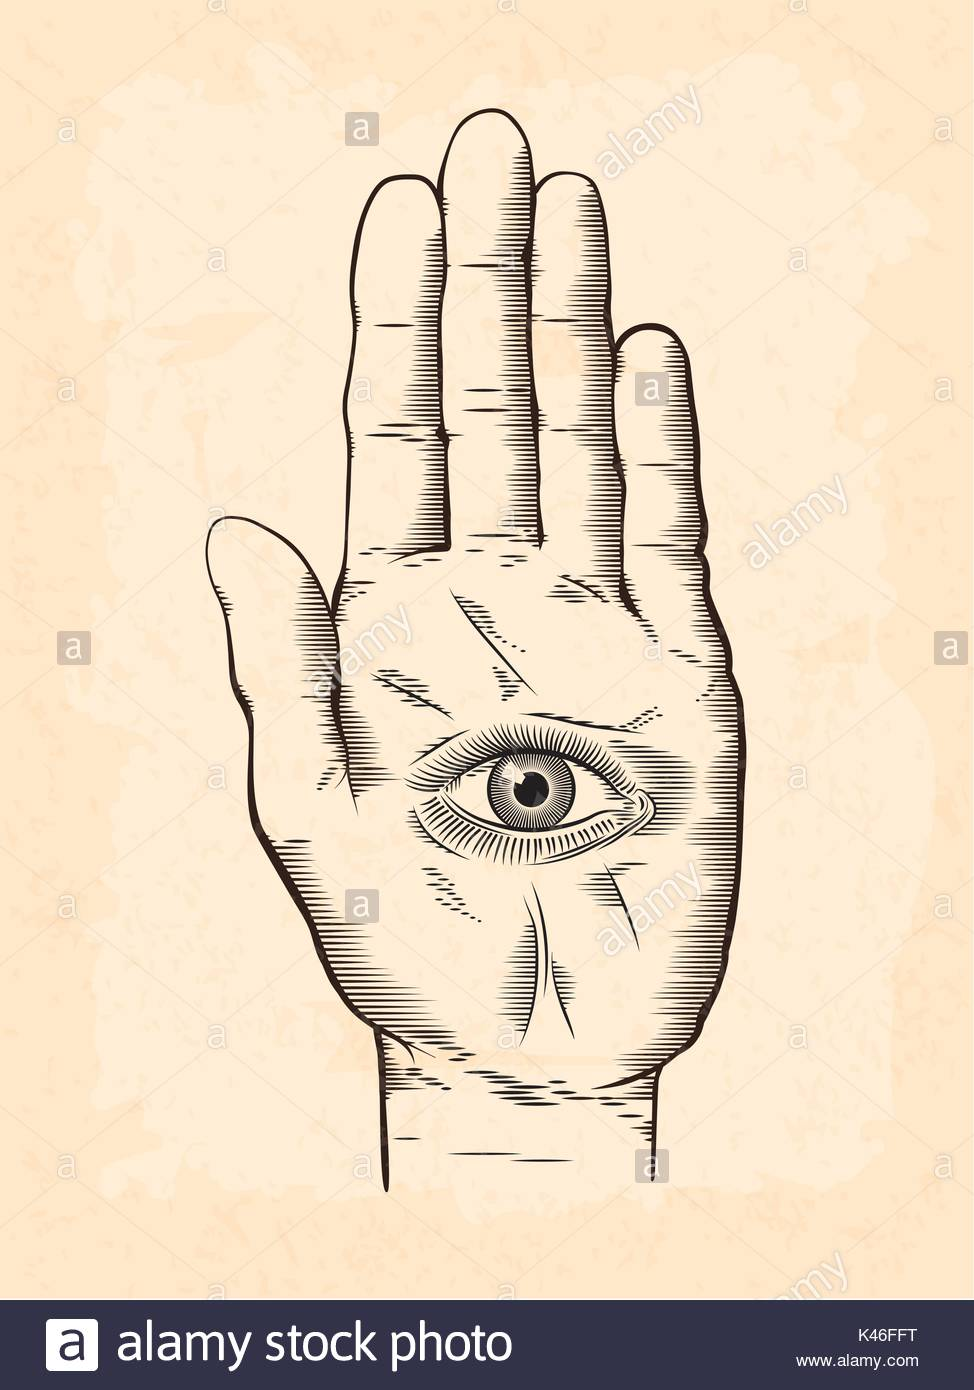 974x1390 Vector Illustration Of Mystic Hamsa All Seeing Eye In Hand Symbol